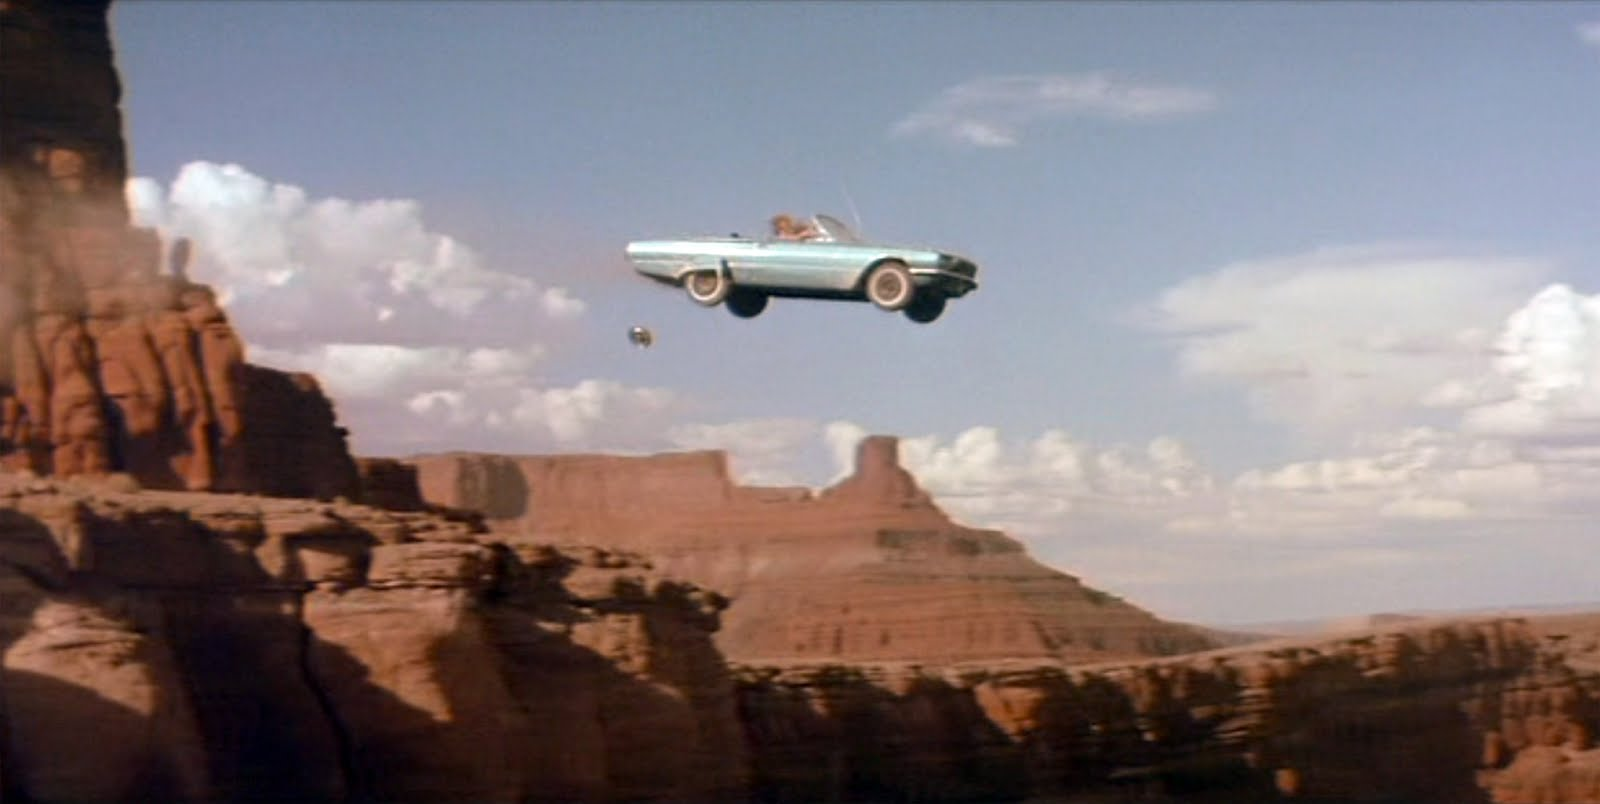 Thelma y louise3